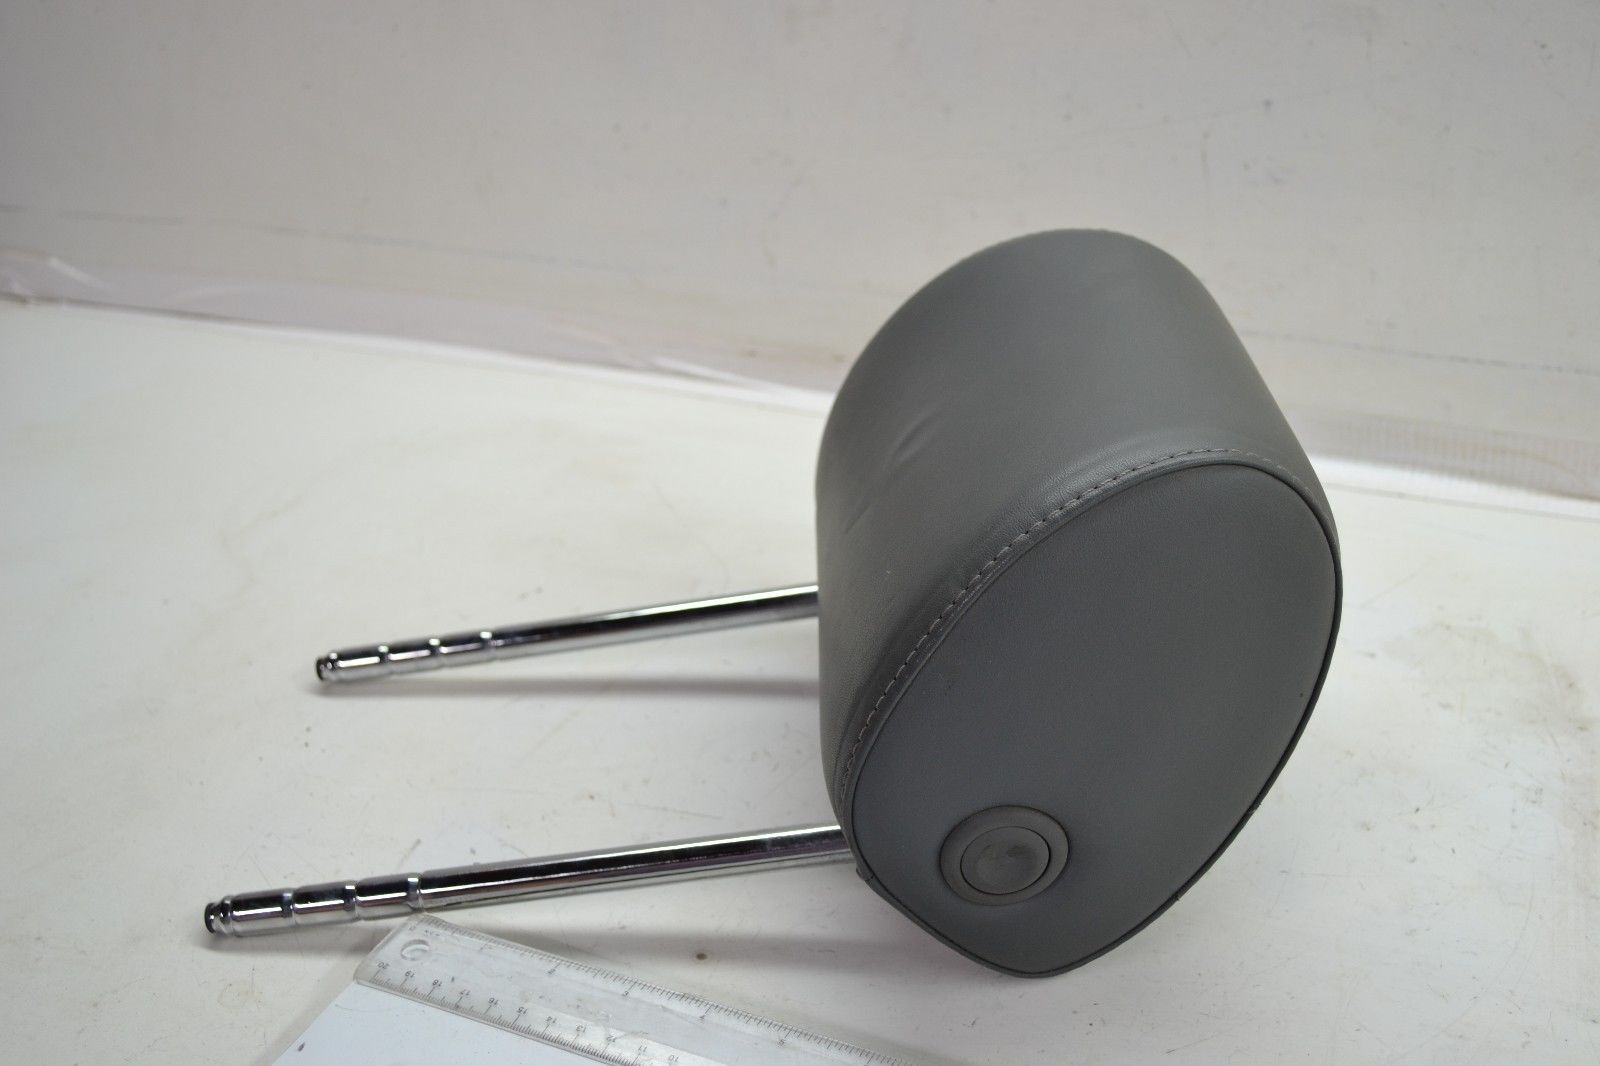 2000-2006 AUDI TT MK1 FRONT LEFT DRIVER SIDE HEADREST / HEAD REST BLACK OEM Does not apply